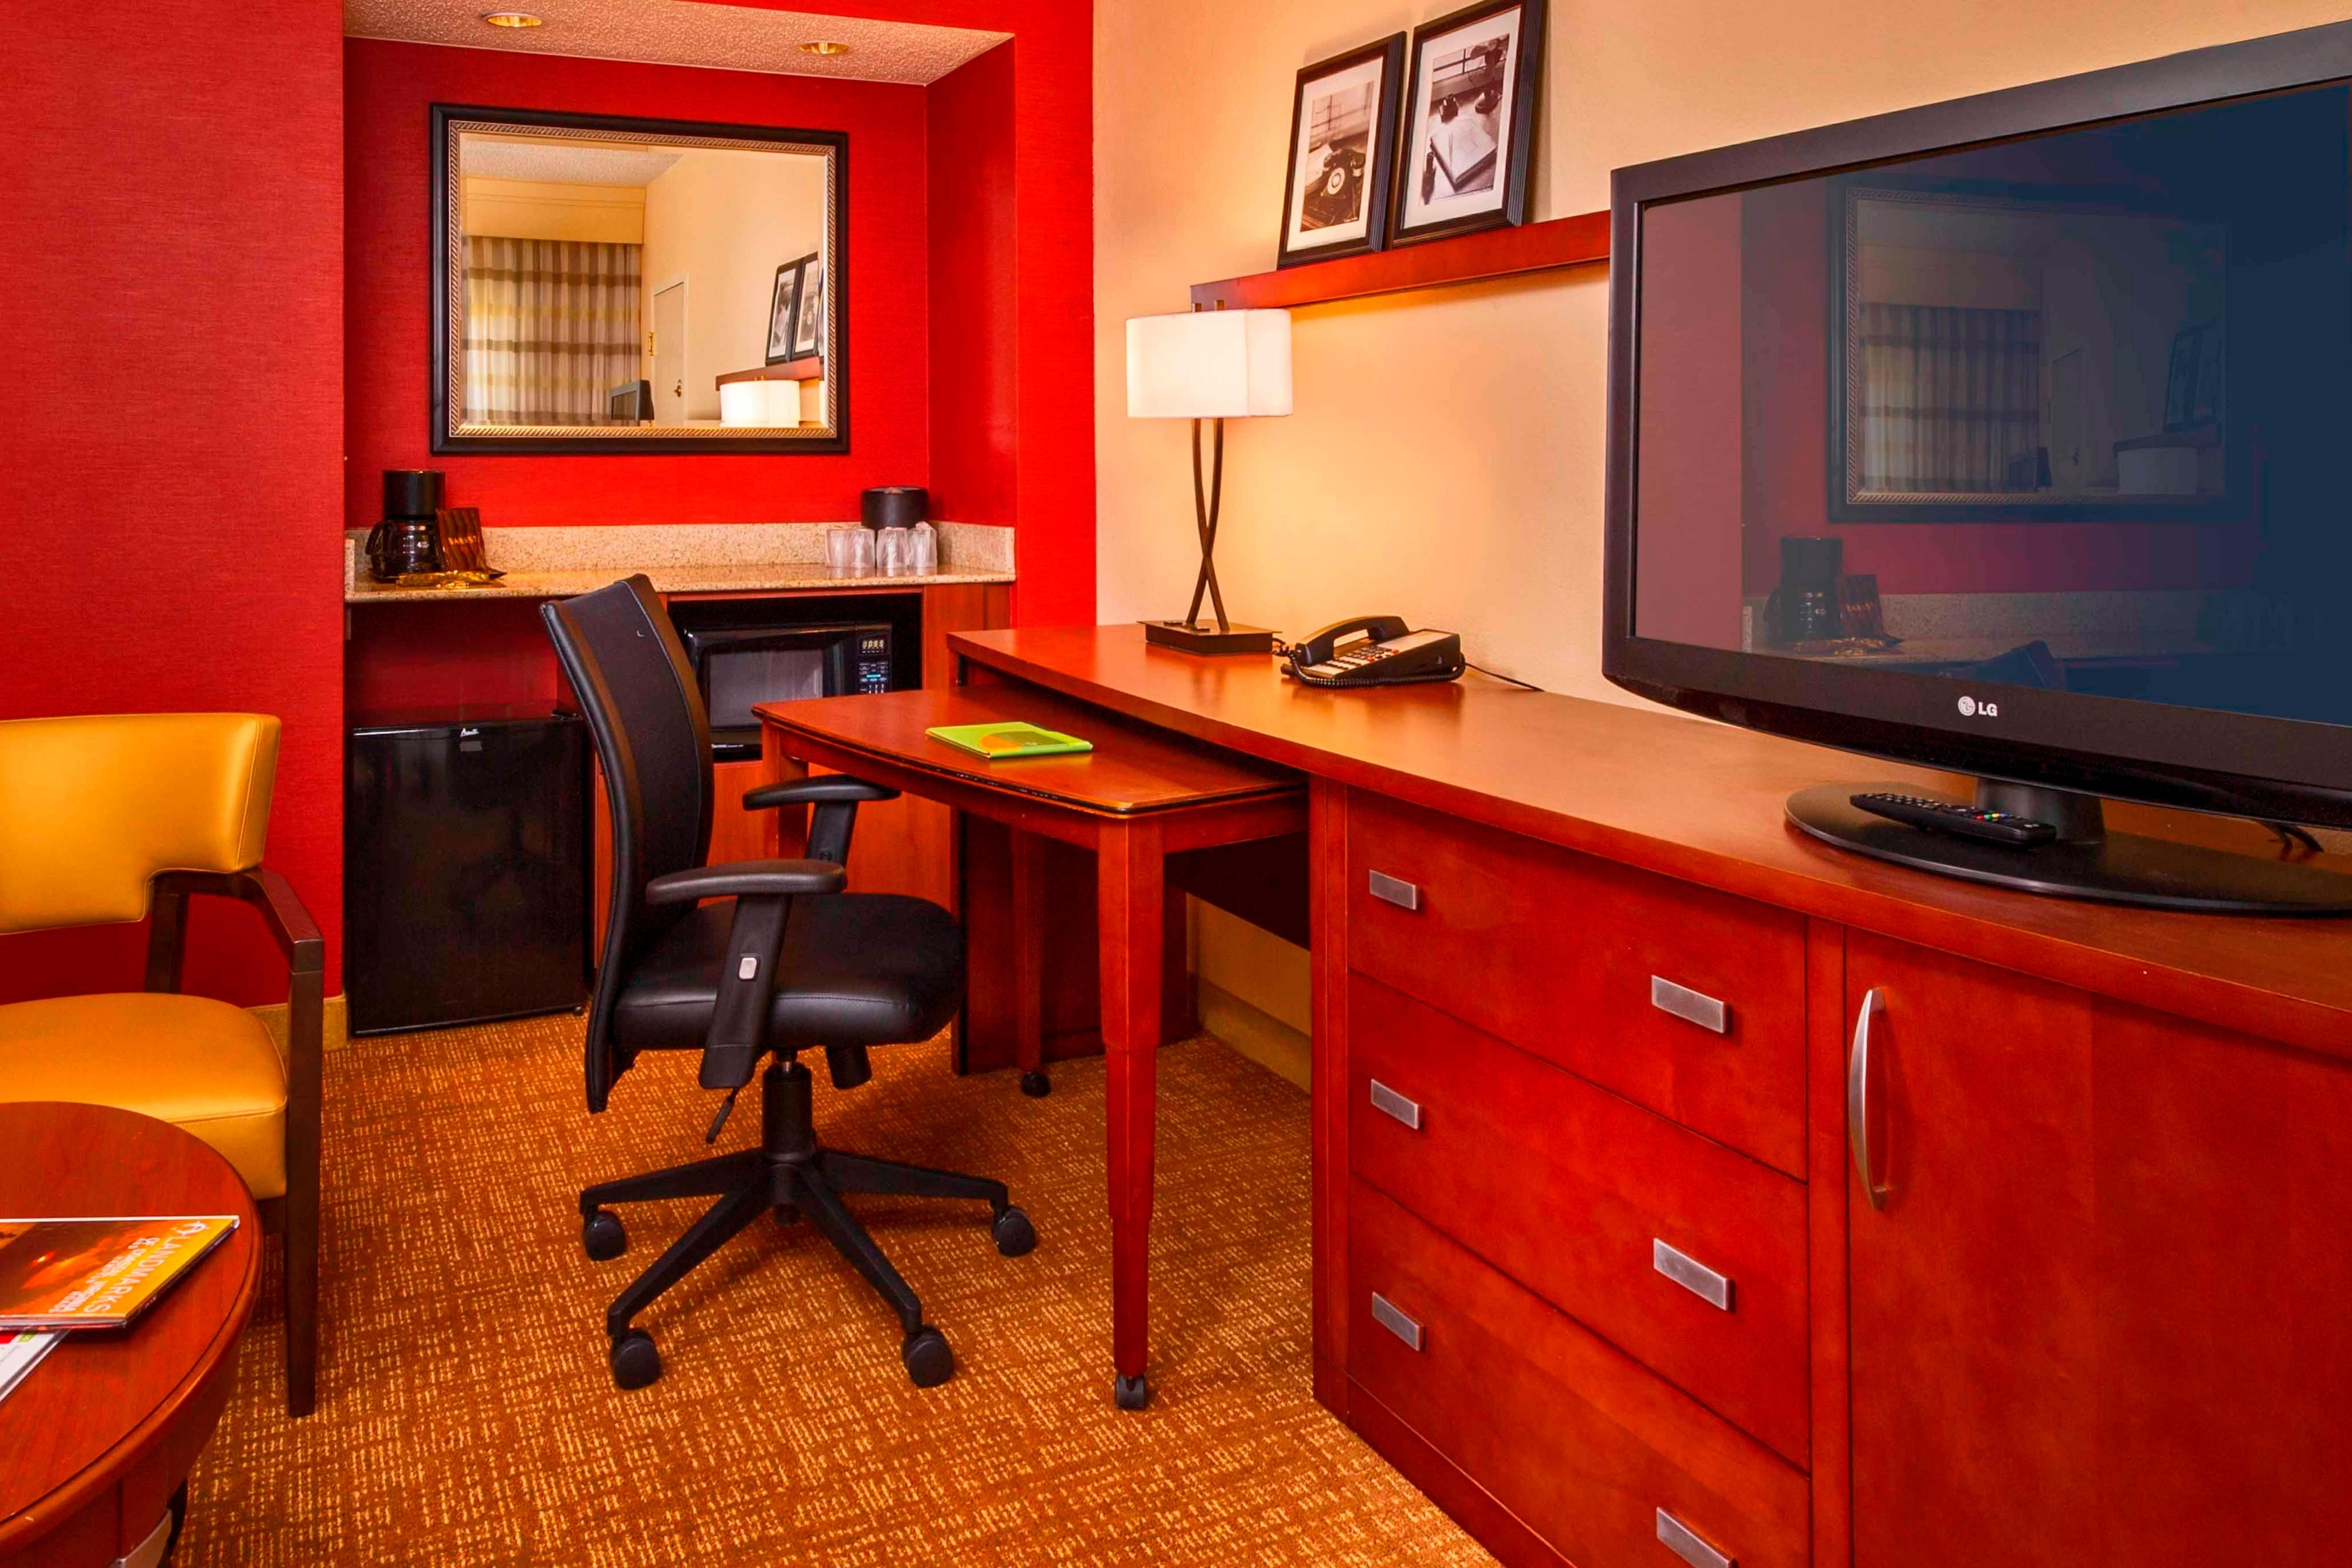 Virginia beach hotel suites norfolk va courtyard - 2 bedroom hotels in virginia beach ...